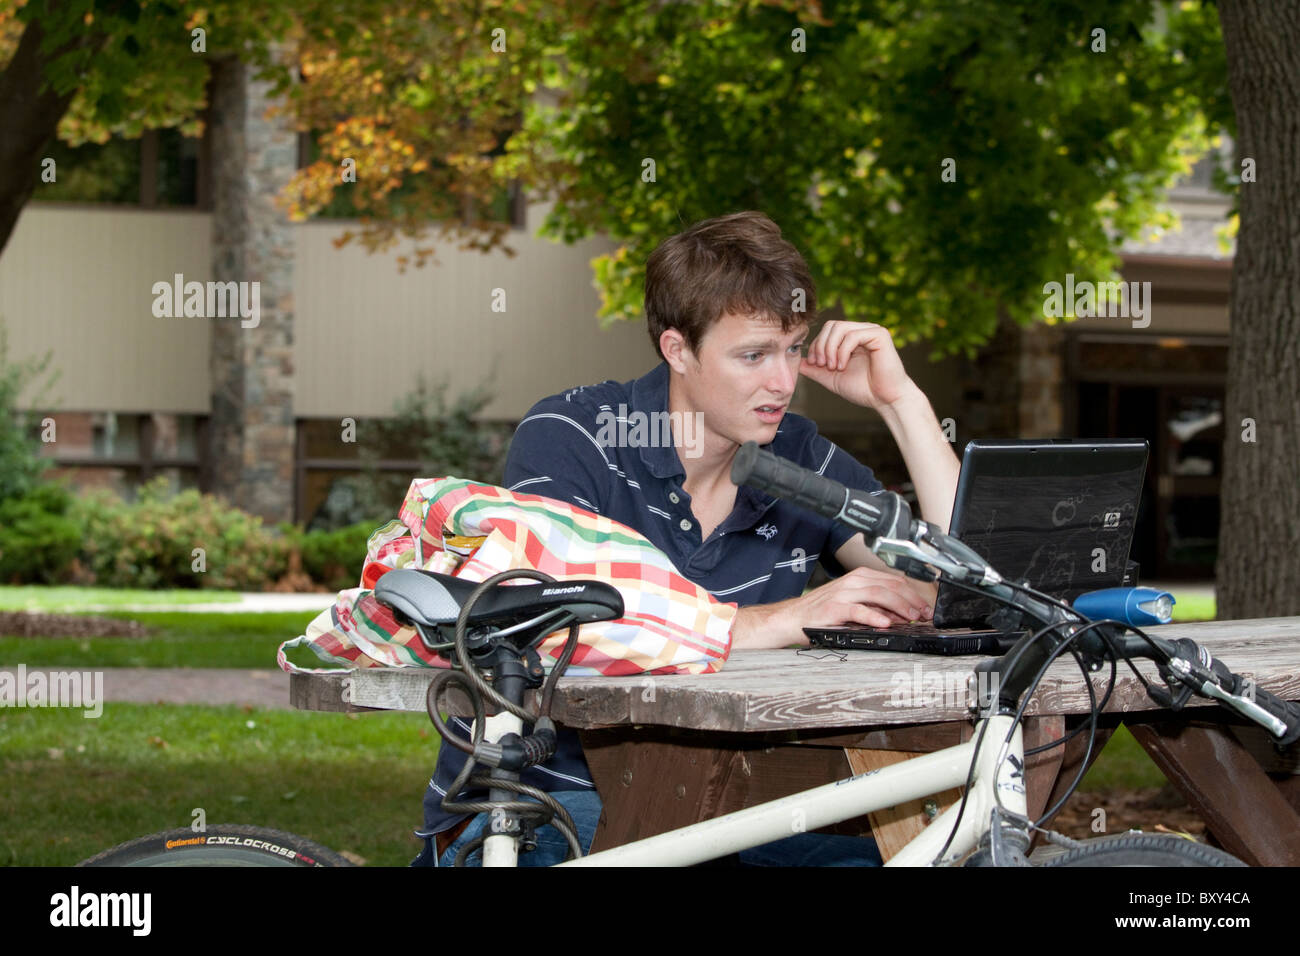 A young male student shows dismay at what he sees on his computer screen - Stock Image